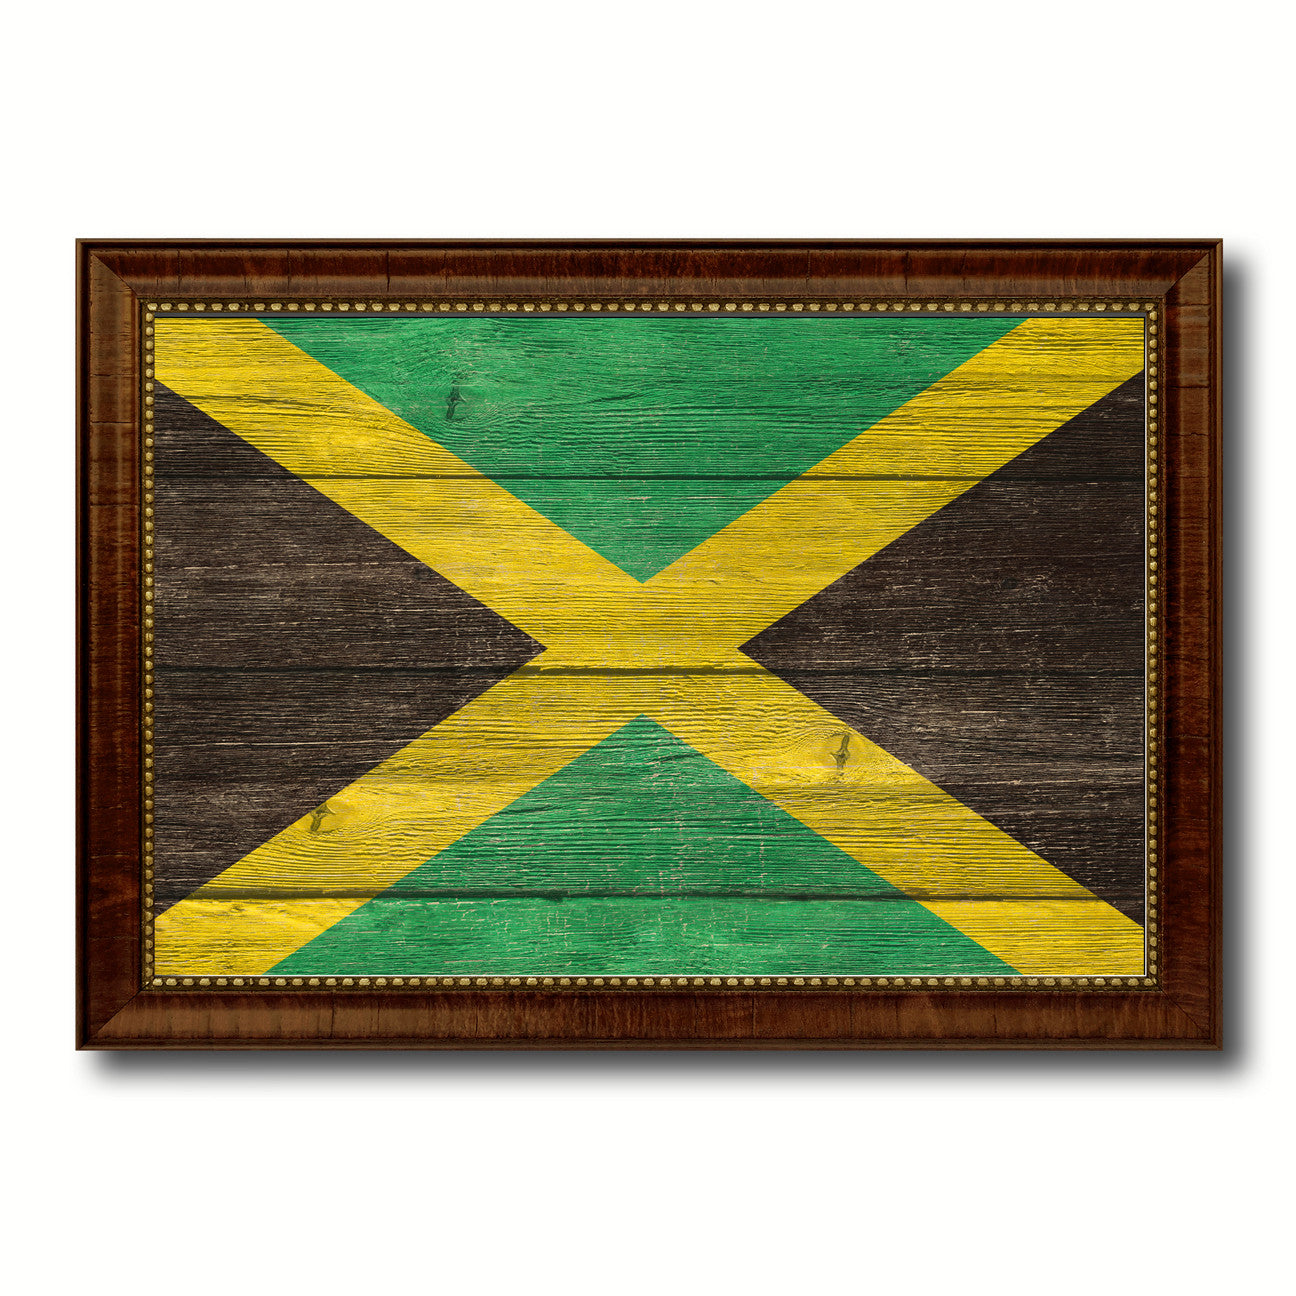 Jamaica Country Texture Flag Rustic Vintage Giclee Print Home Decor